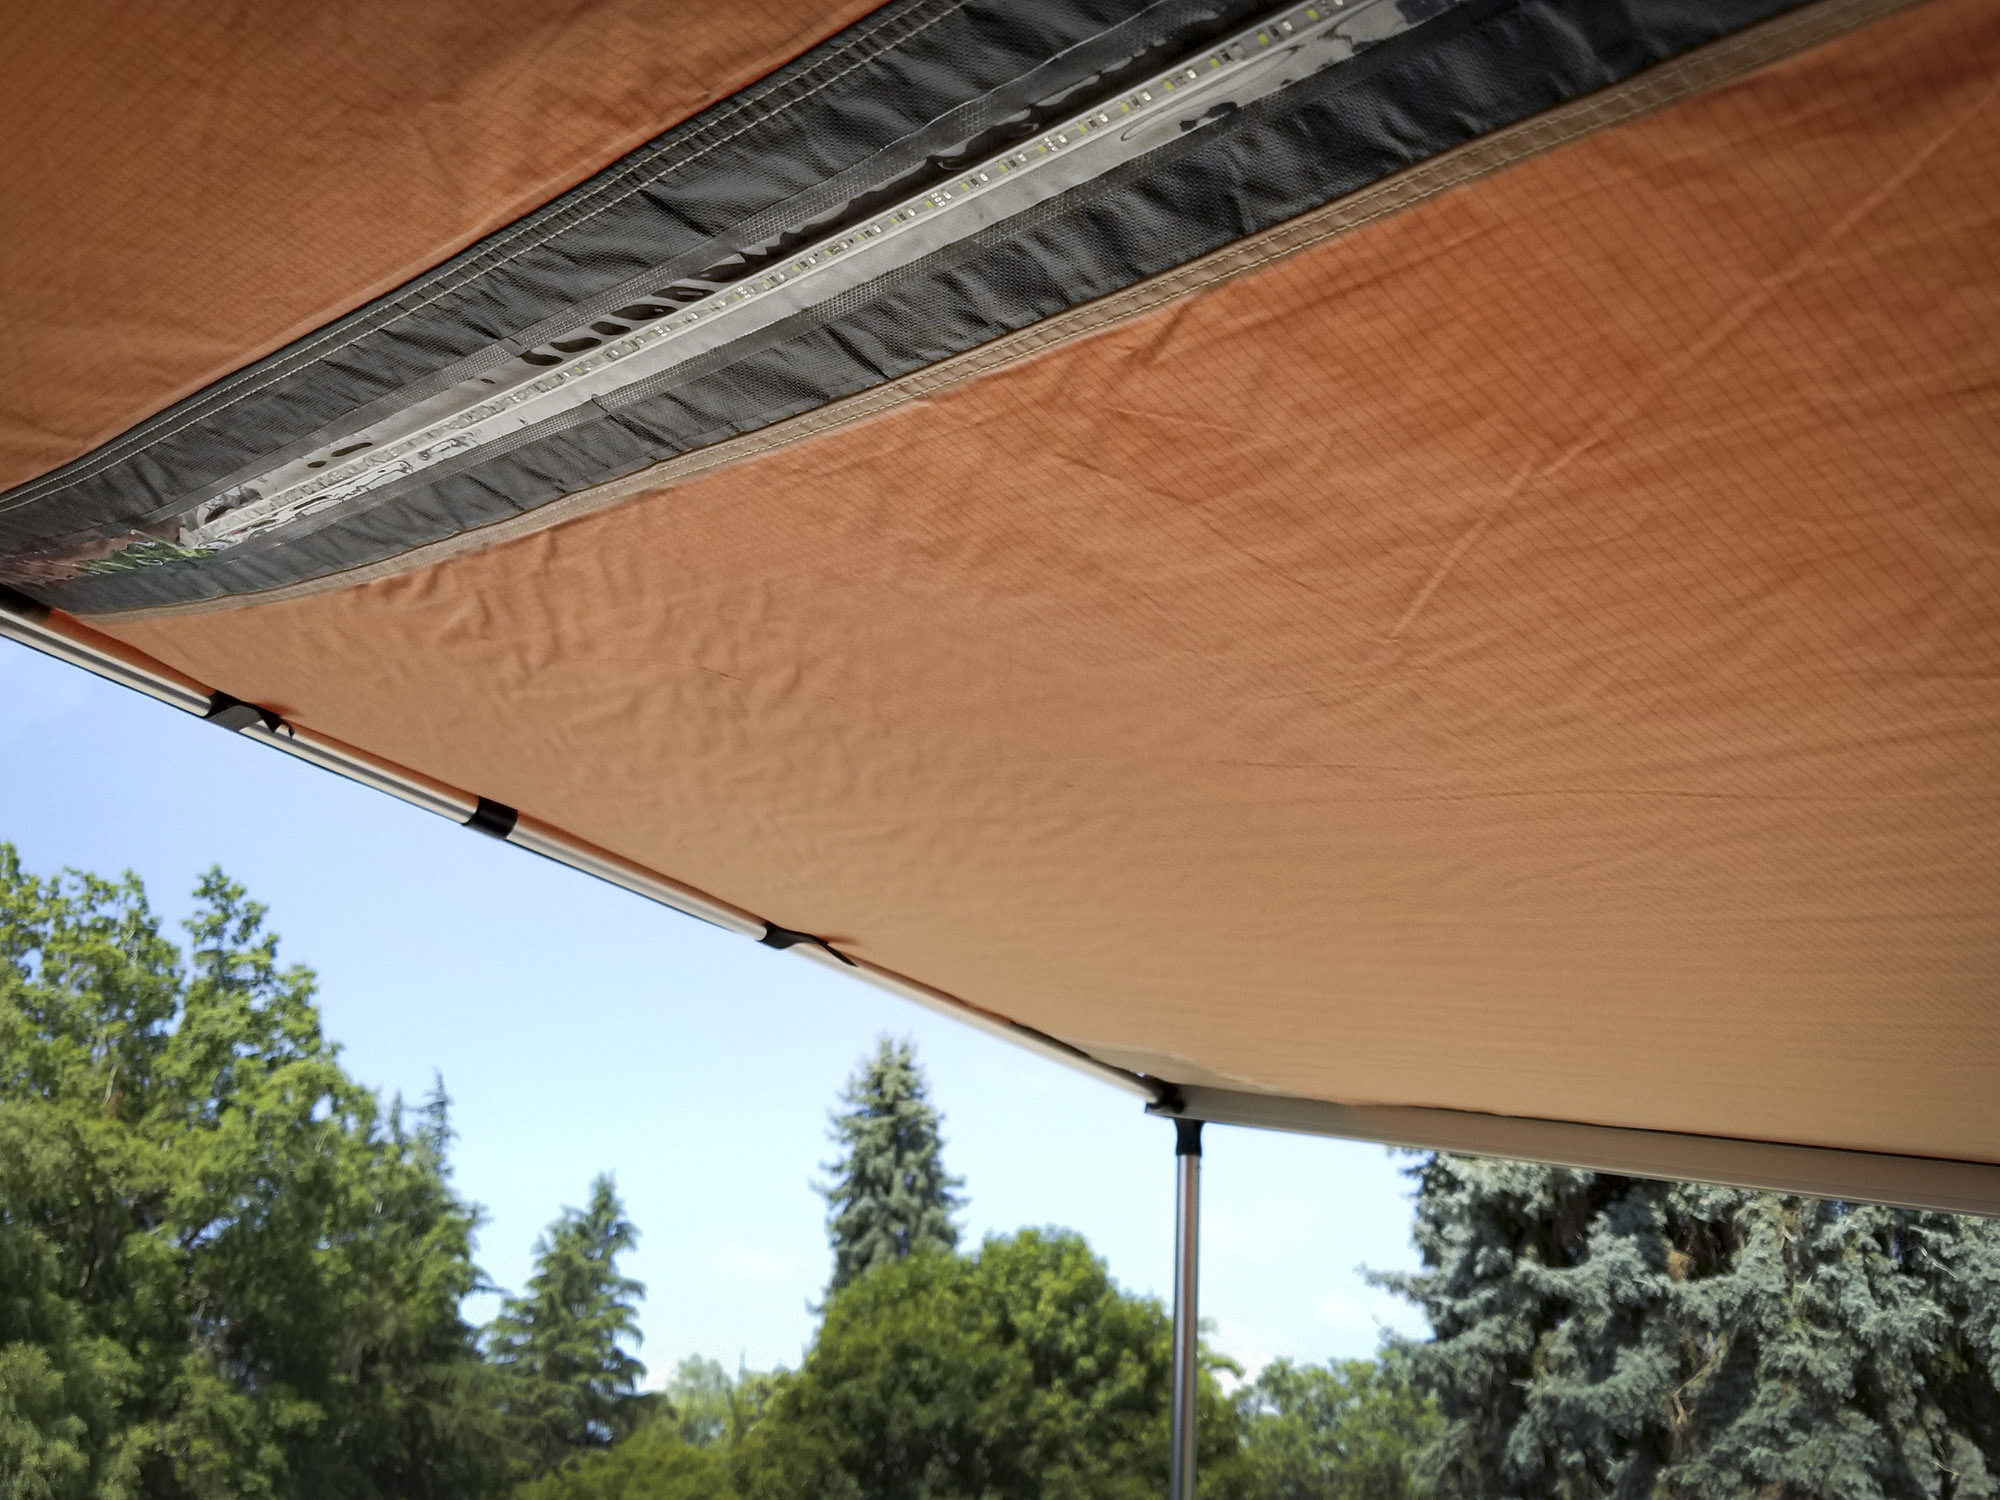 The ARB 2500MM awning has an LED lighting strip in the middle of the awning.